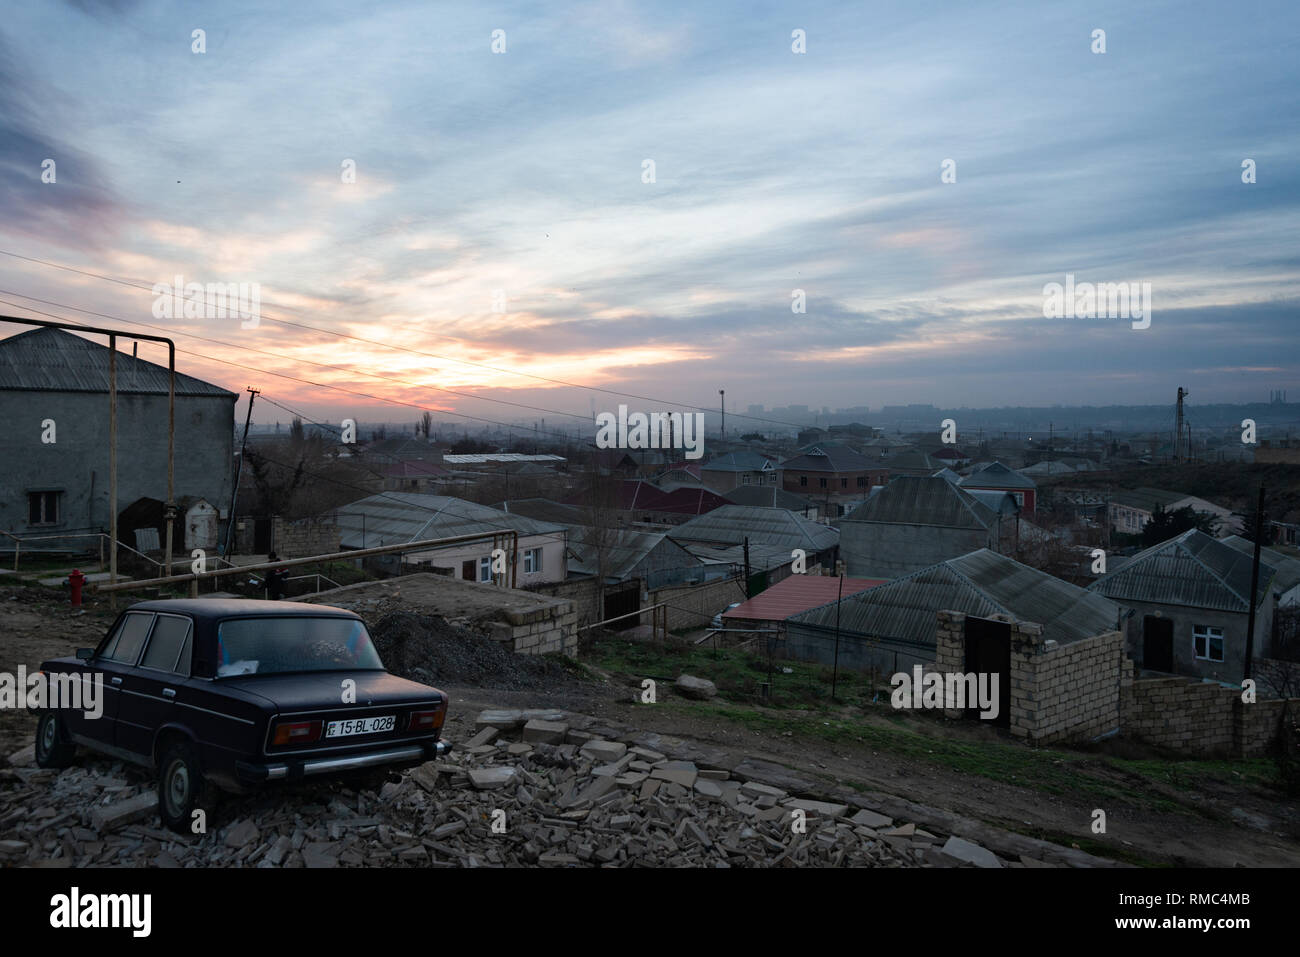 Sunrise over the outskirts of Baku with an old Lada in the foreground, Azerbaijan taken in January 2019 - Stock Image